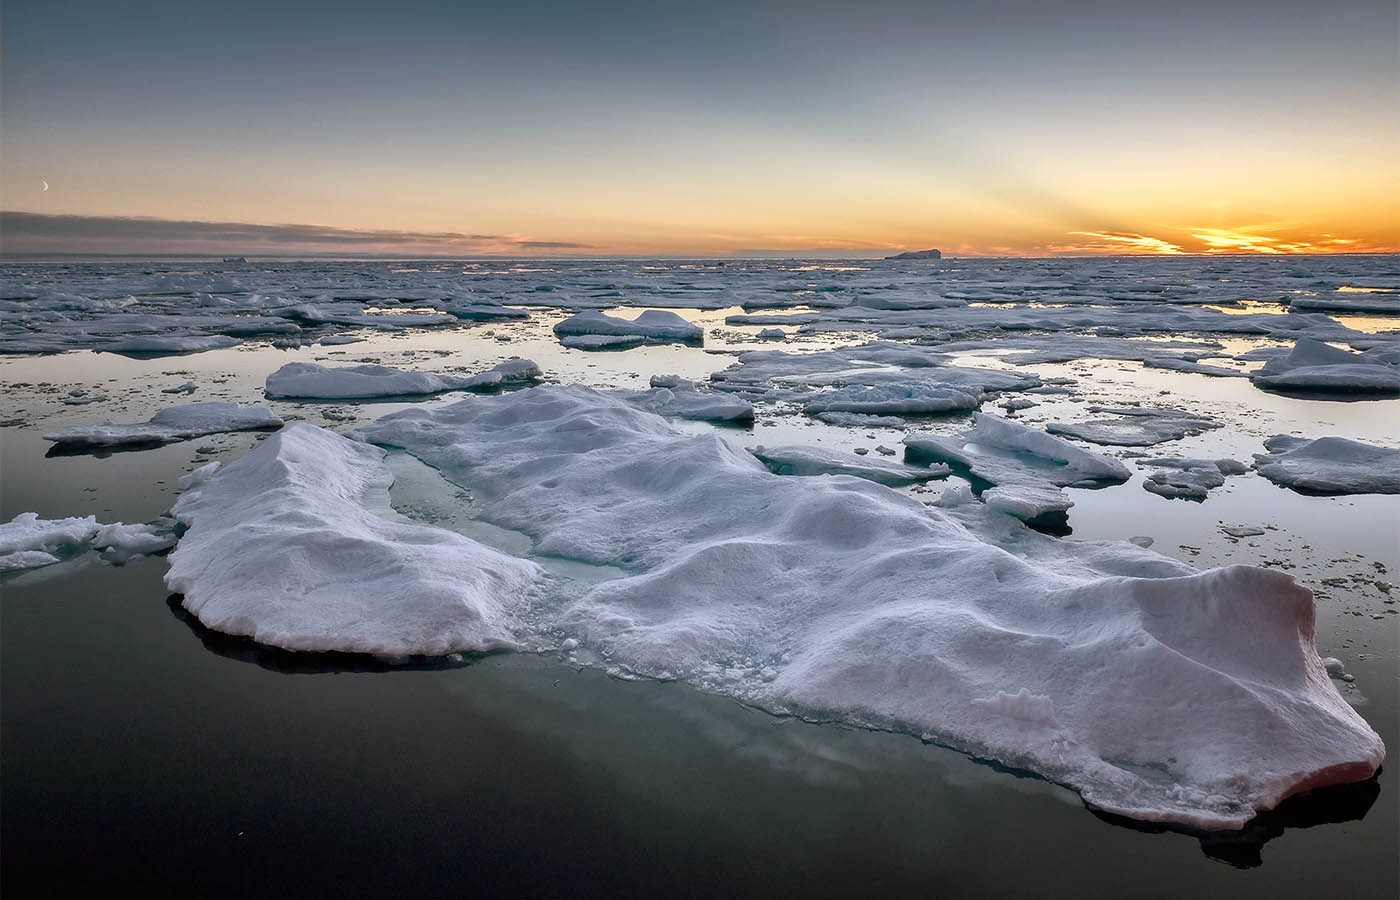 Arctic Ocean. Copyright D.L. Labrie, Fisheries and Oceans Canada.